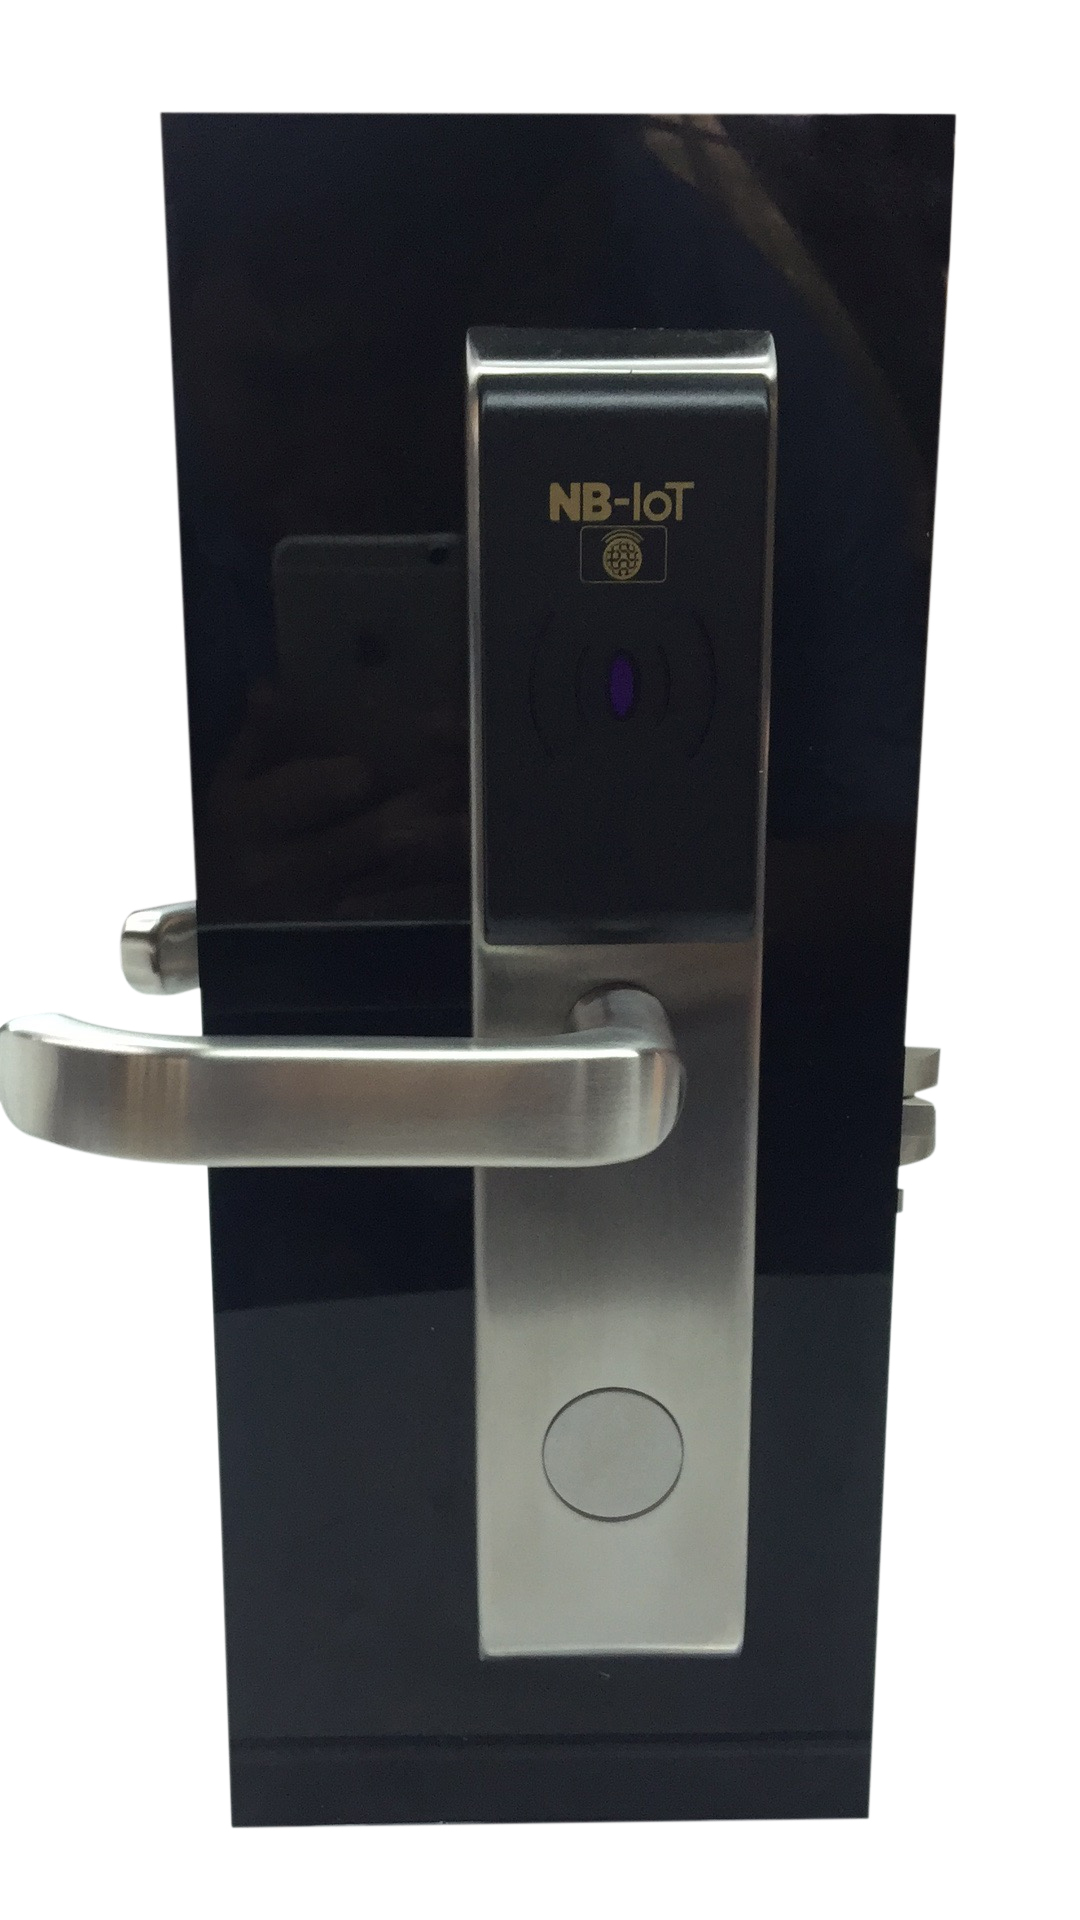 NB IoT lock front white background